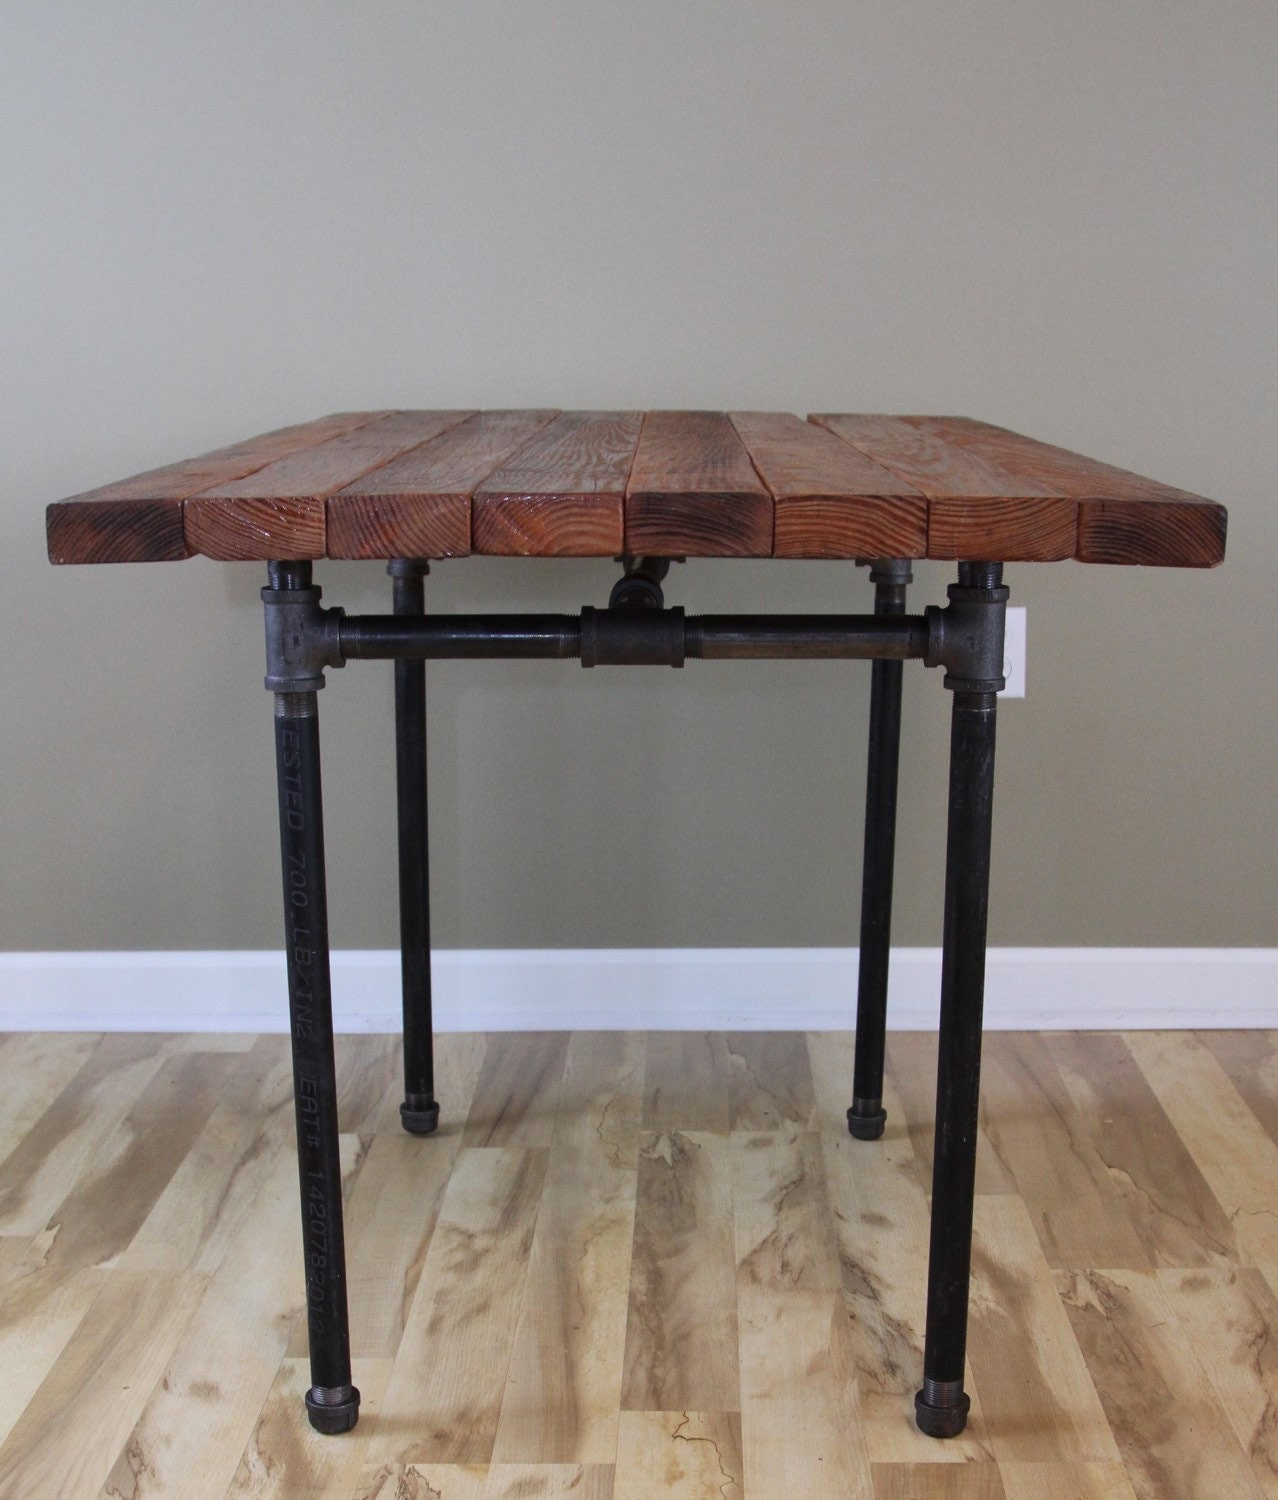 the kitchen table reclaimed wood butcher butcher block kitchen table Butcher Block Pub Dining Table Reclaimed Farmhouse Table zoom